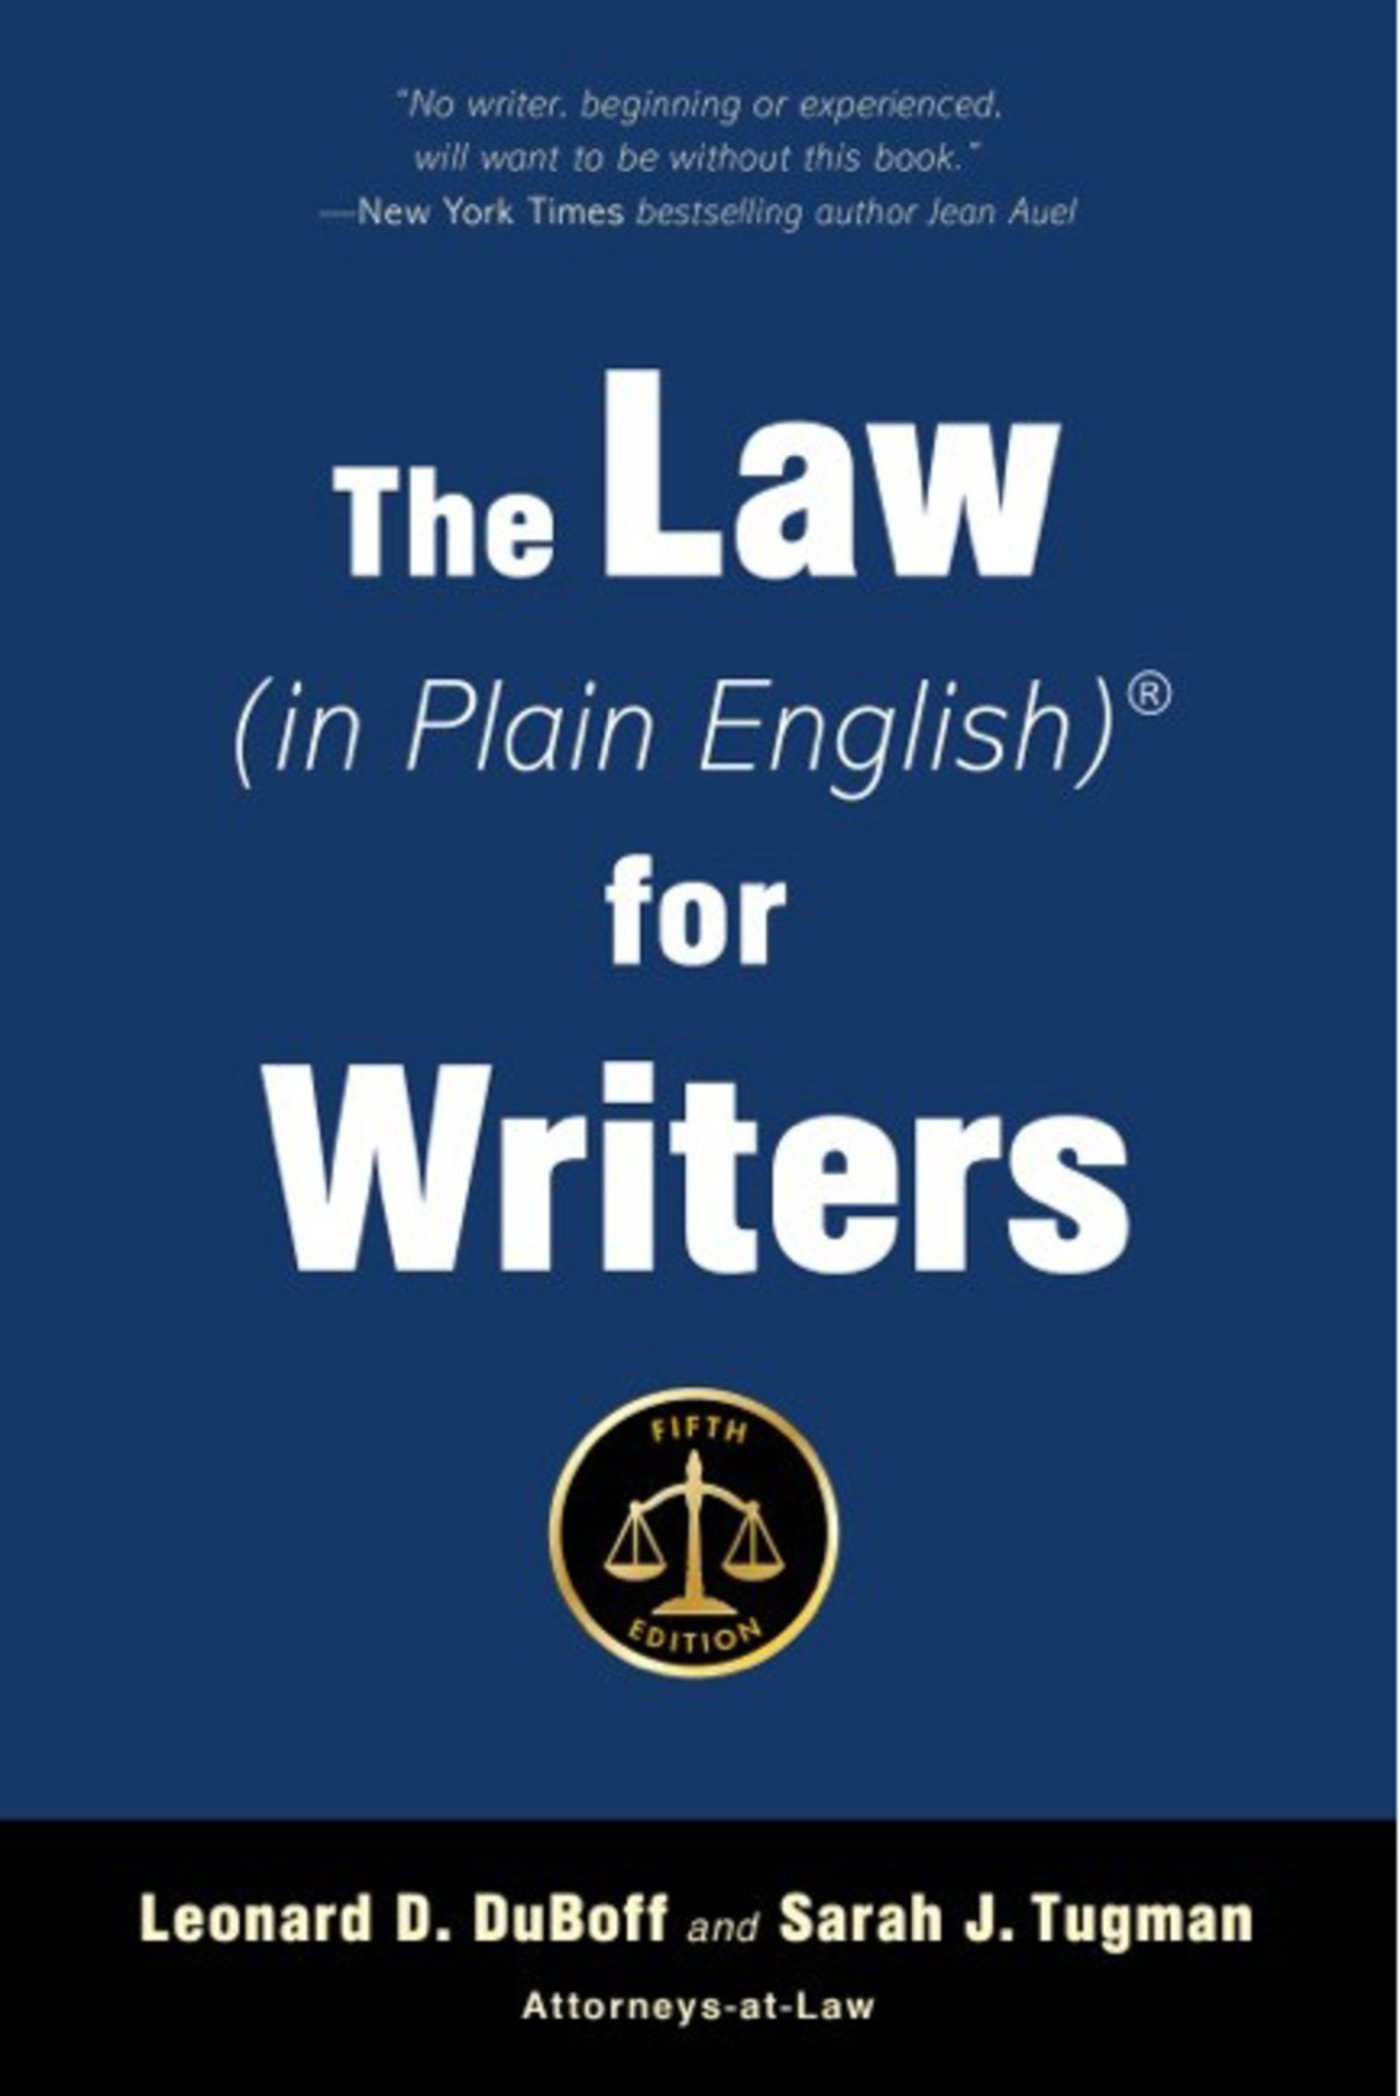 The Law (in Plain English) for Writers (Fifth Edition) by Allworth Press